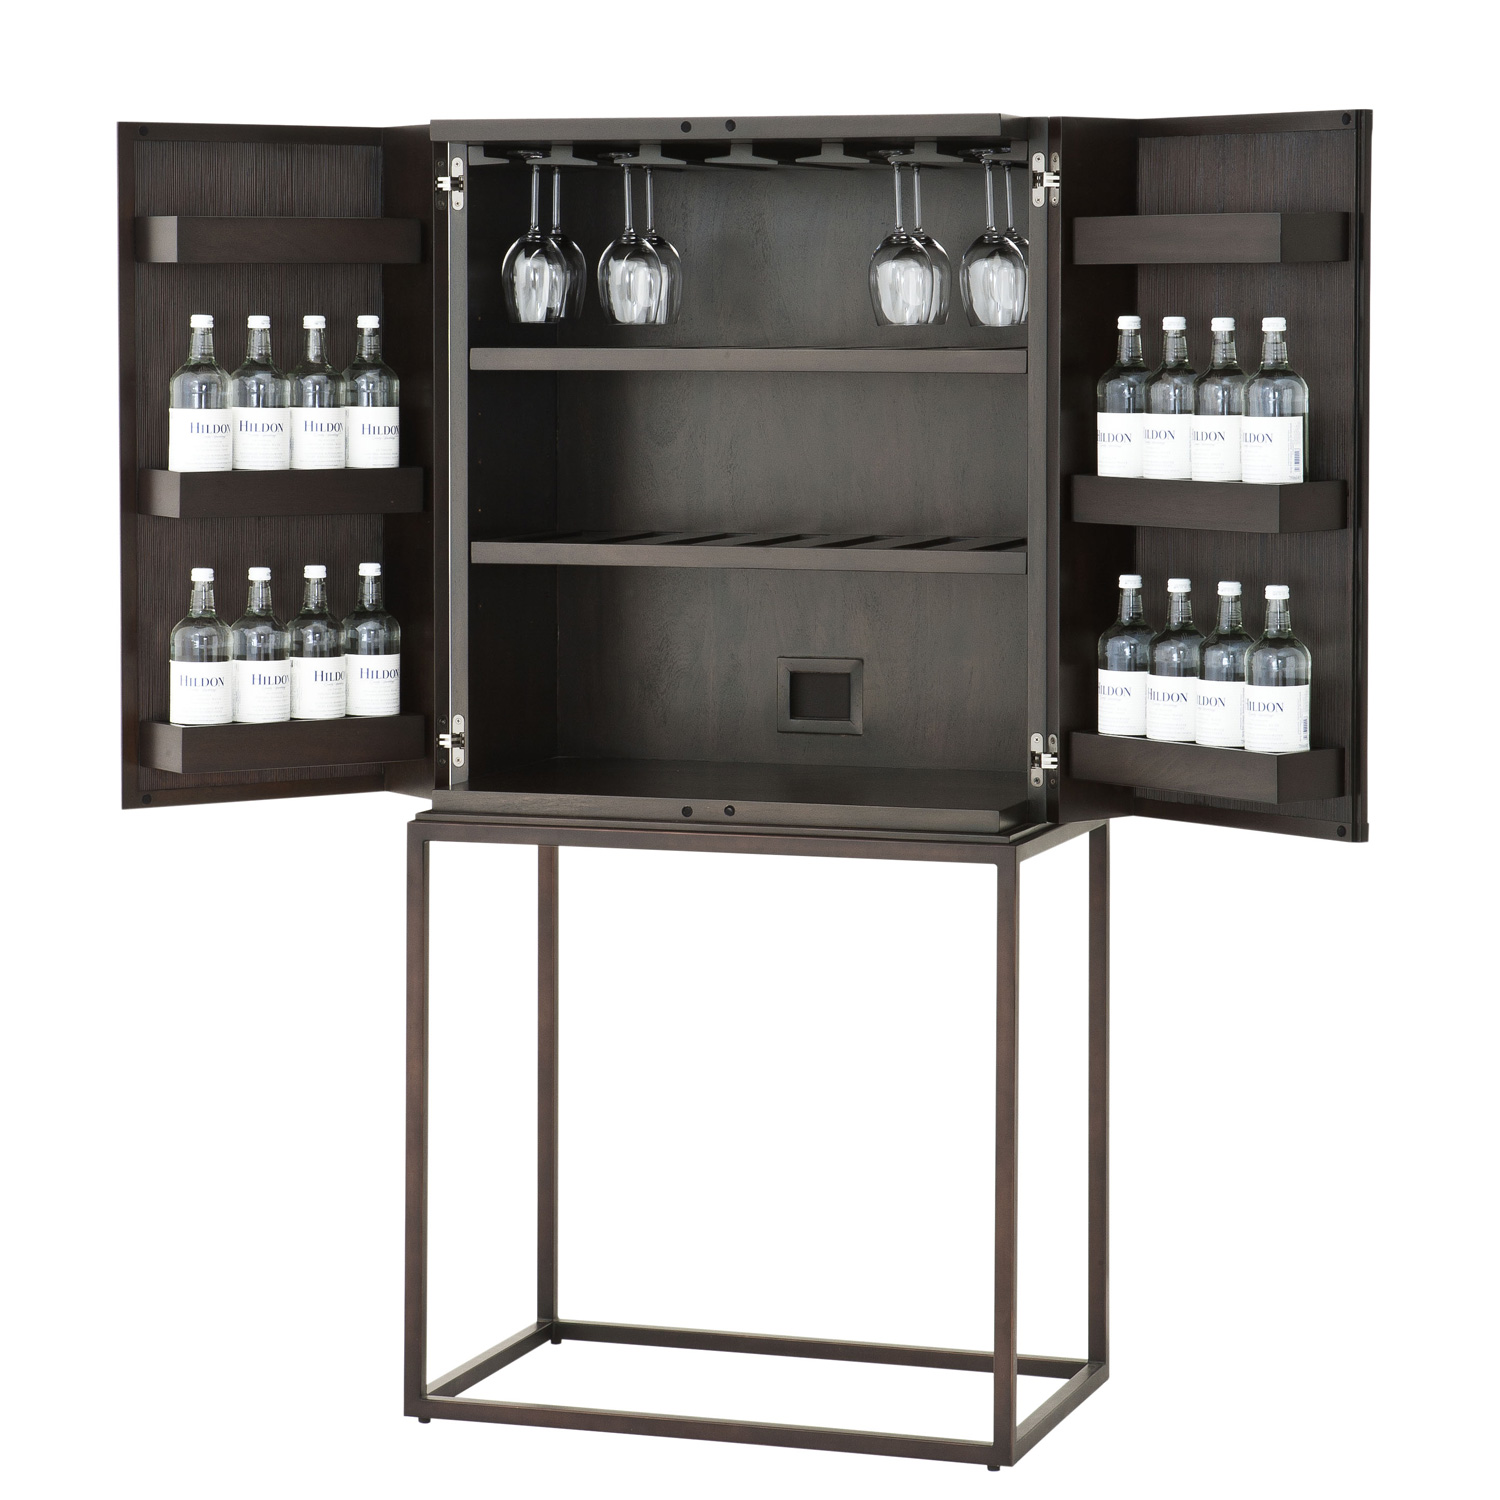 Wine cabinet Delarenta - armoire à vin exclusive - IDKREA Collection du mobilier d'exception